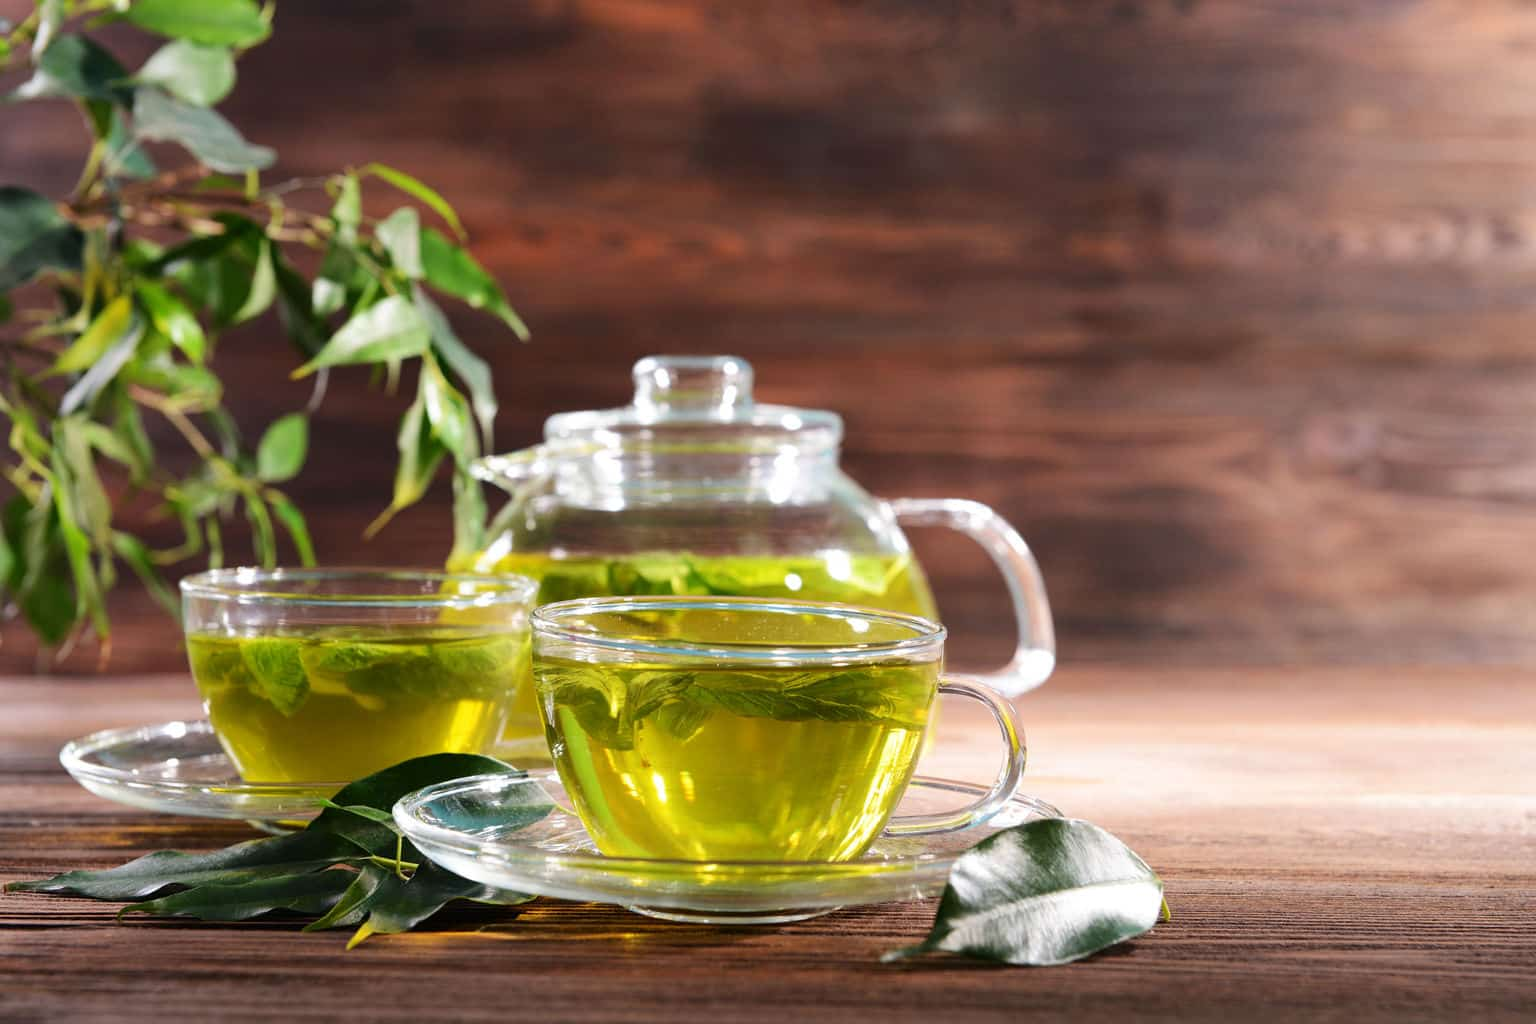 Does green tea affect thyroid?